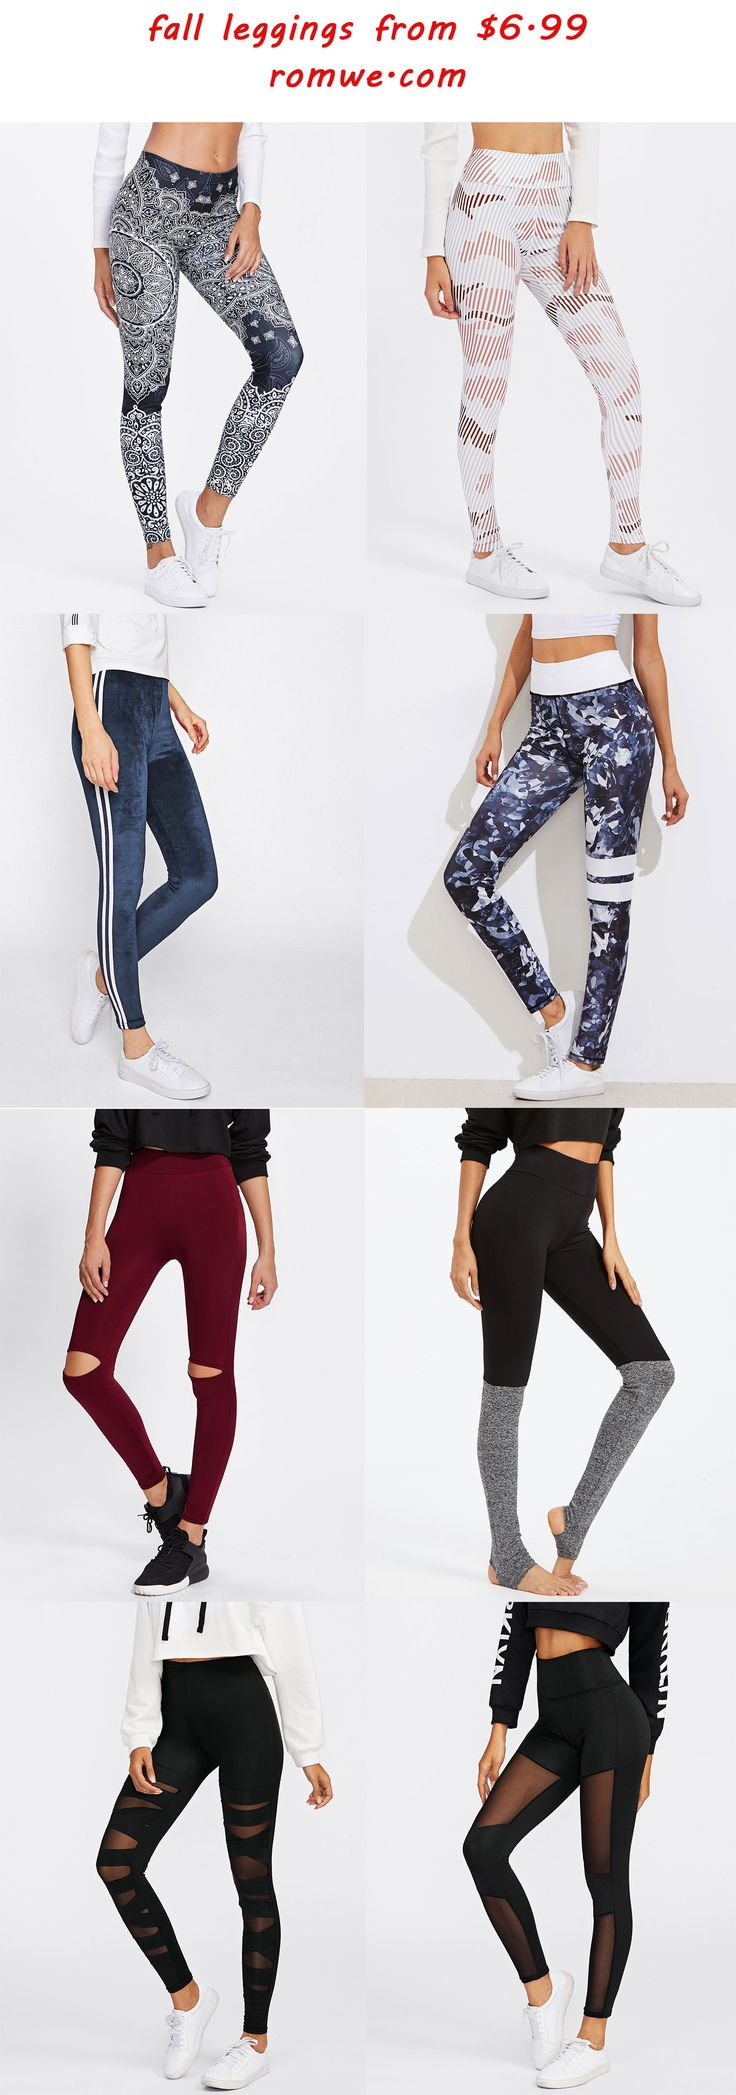 chic fall leggings from romwe.com